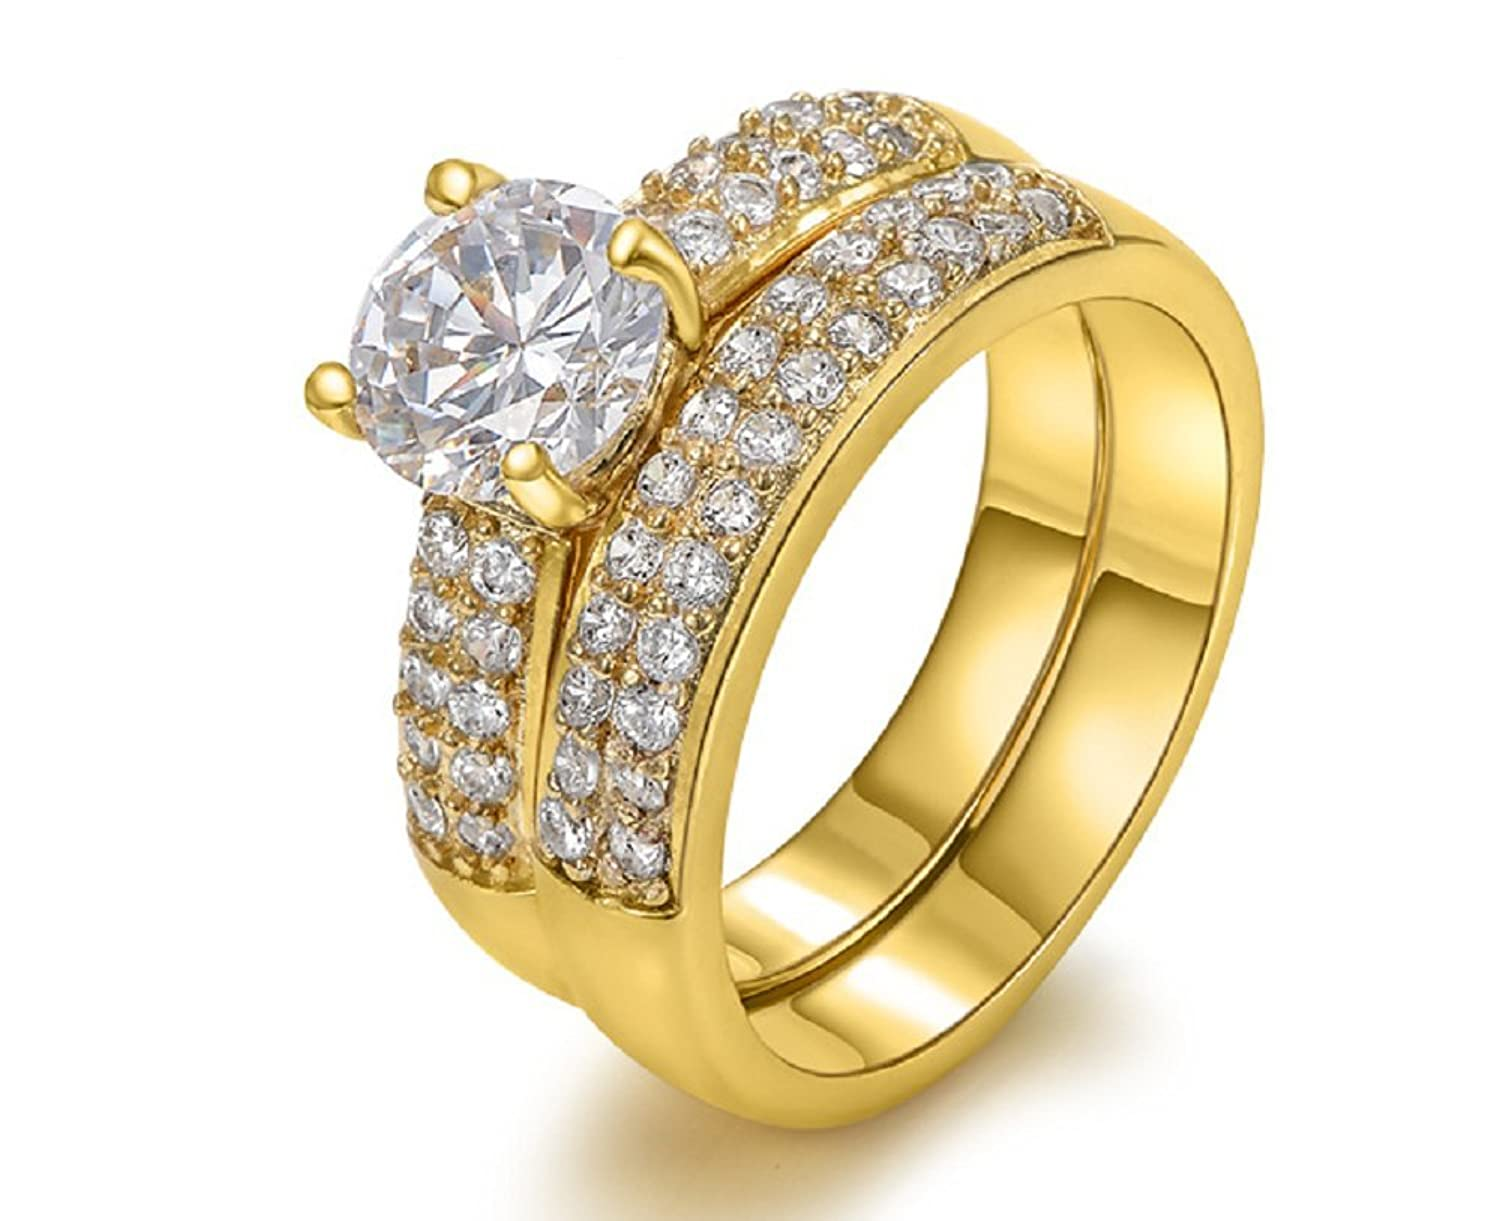 jewellery white image carat diamond stone rings ramsdens ring gold